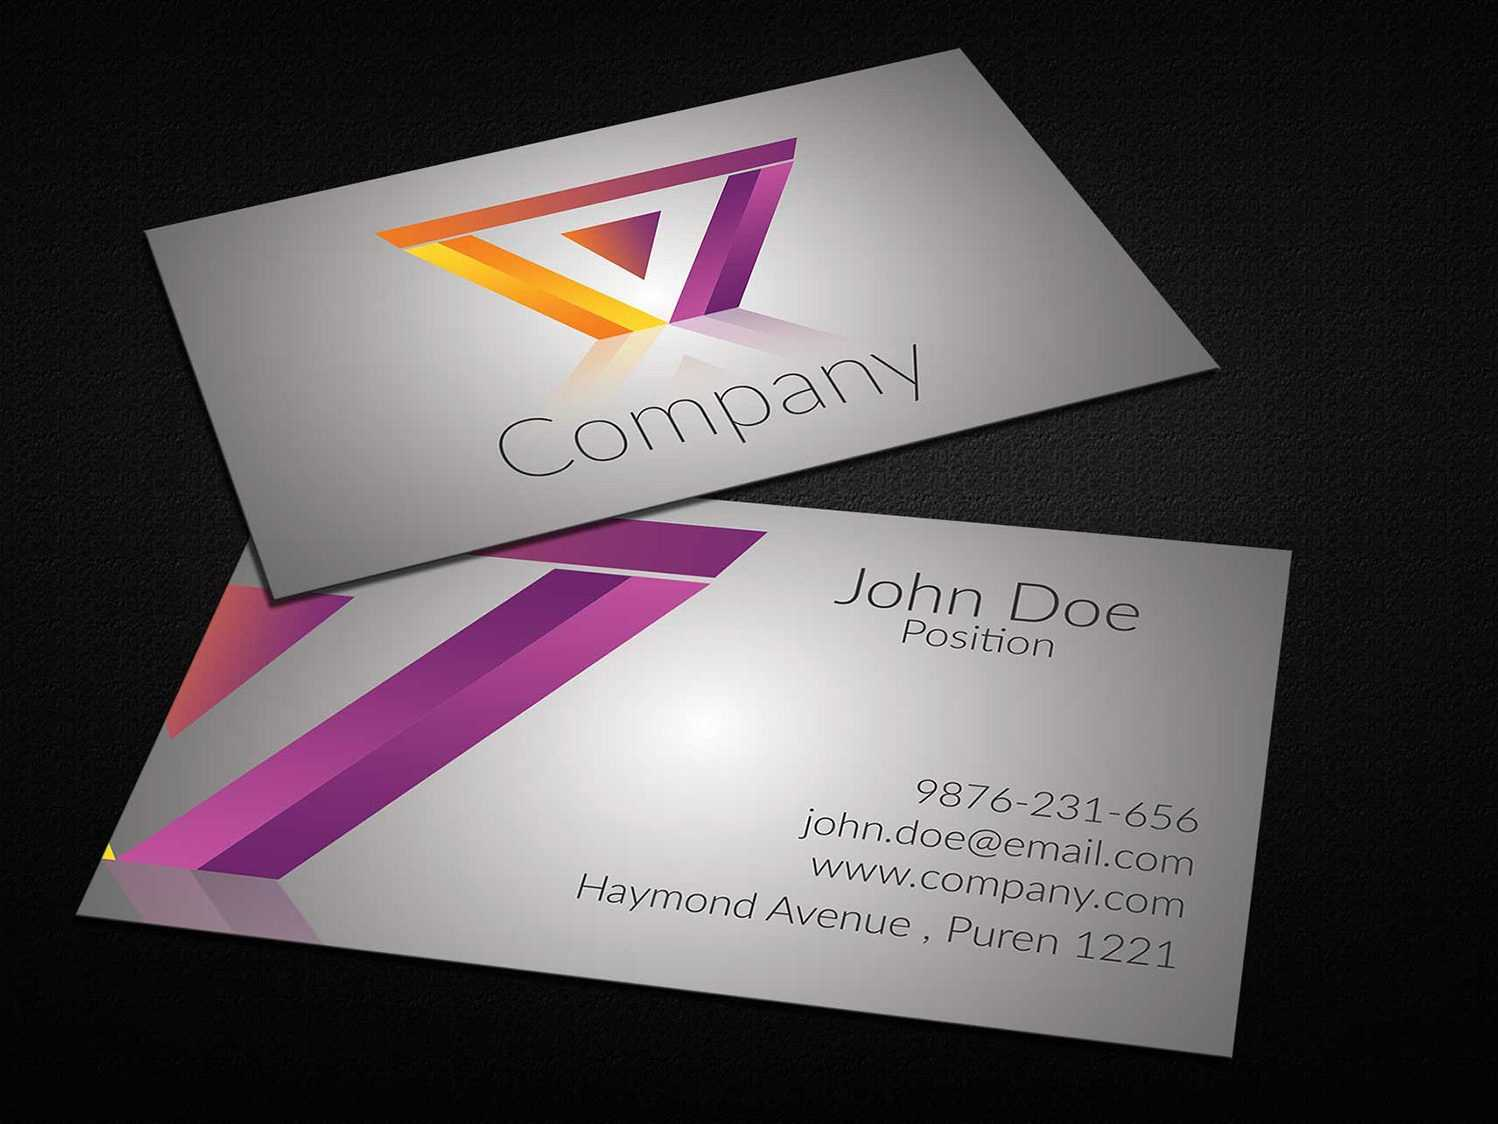 006 Building And Construction Business Card Template Throughout Construction Business Card Templates Download Free